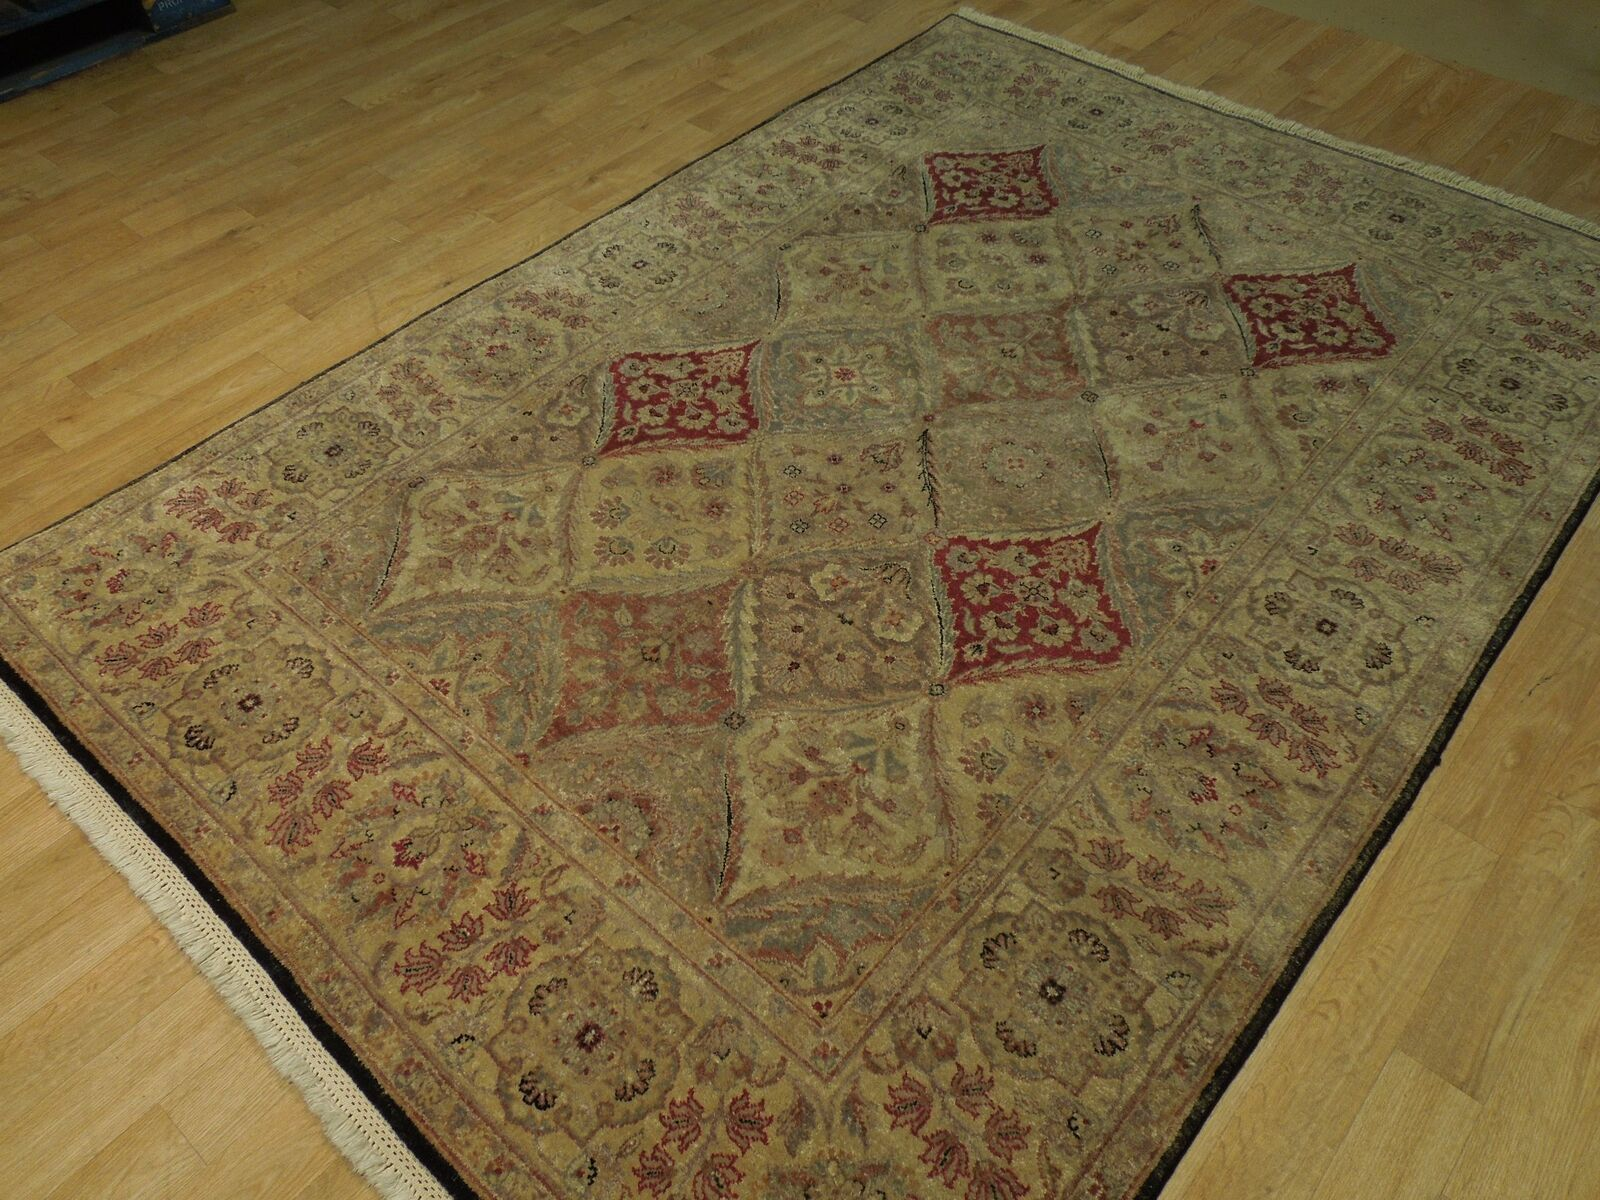 5x7 Multi-Color Oushak Wool Handmade Checked All-Over Transitional Area Rug image 5